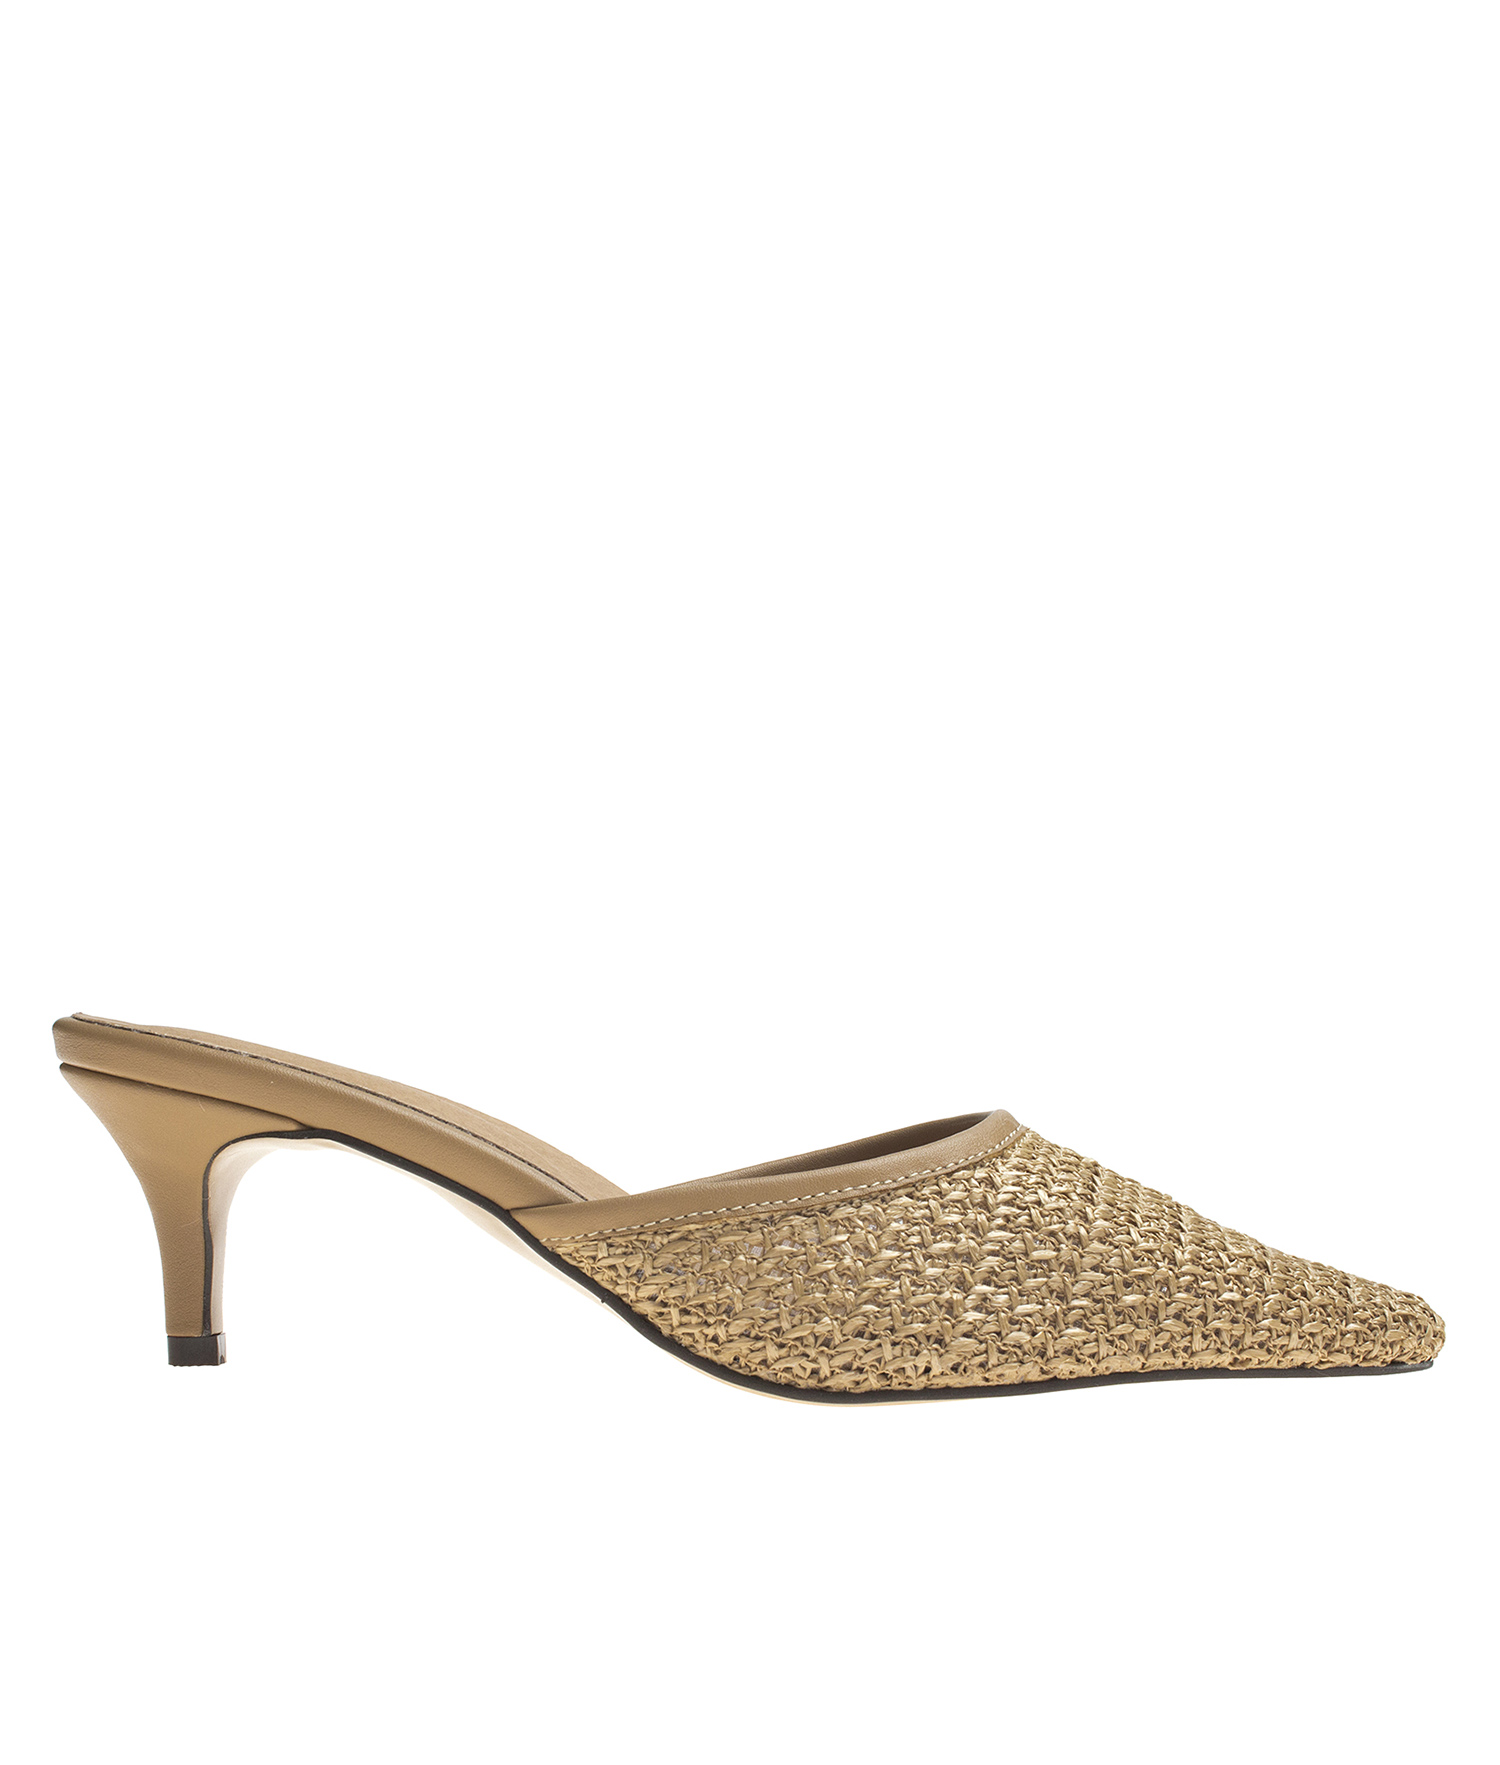 AnnaKastle Womens Pointy Toe Woven Mule Sandals Light Brown